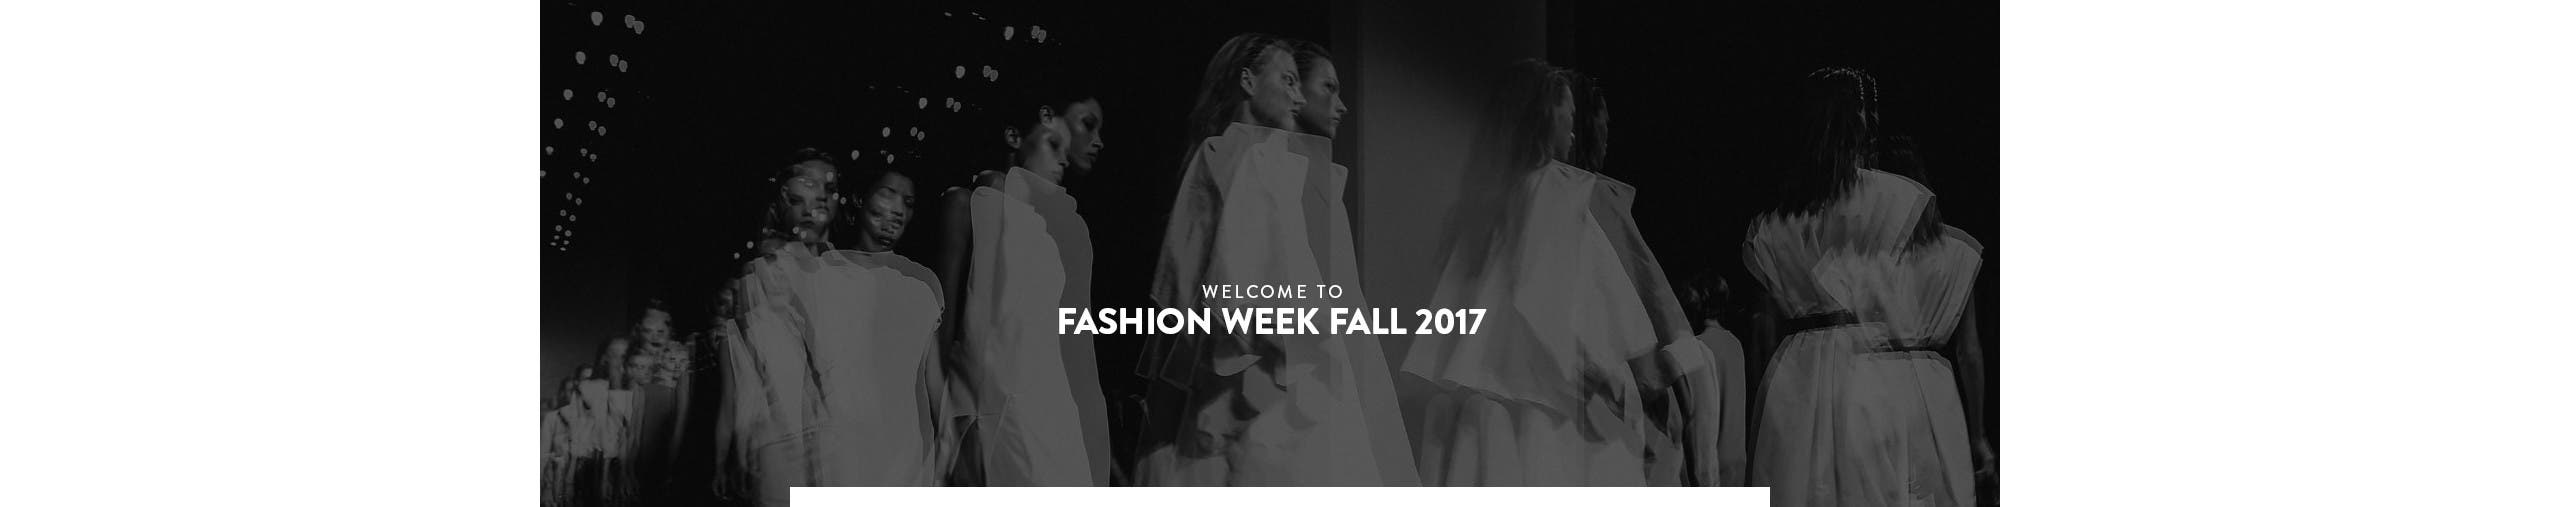 Welcome to Fashion Week fall 2017.